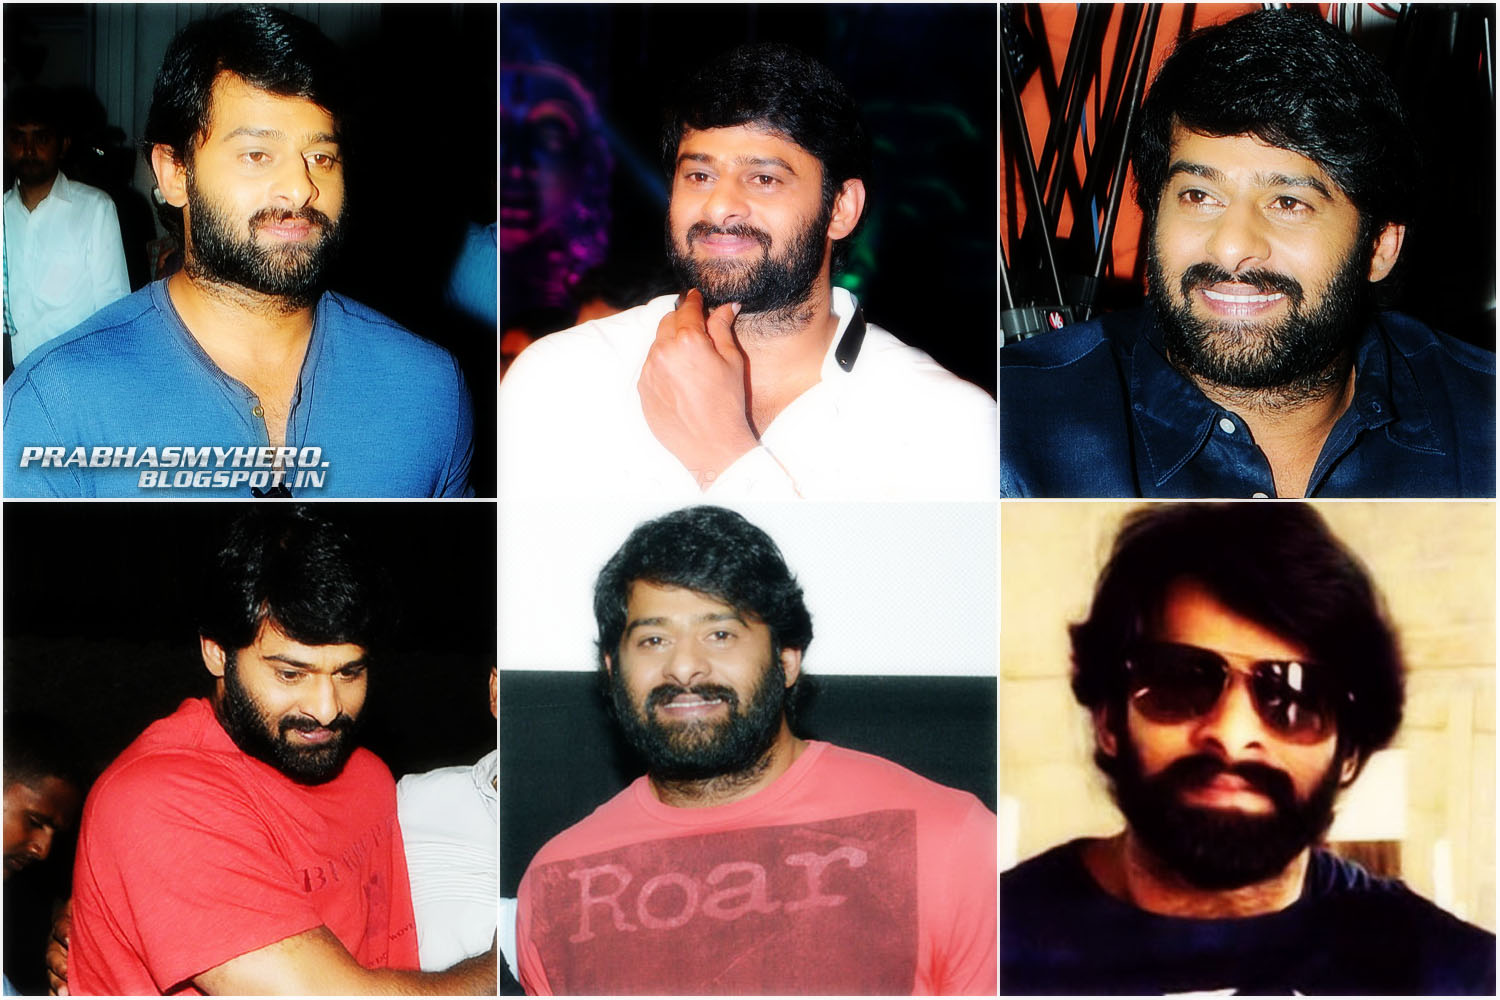 prabhasmyhero: Prabhas New Look for Baahubali